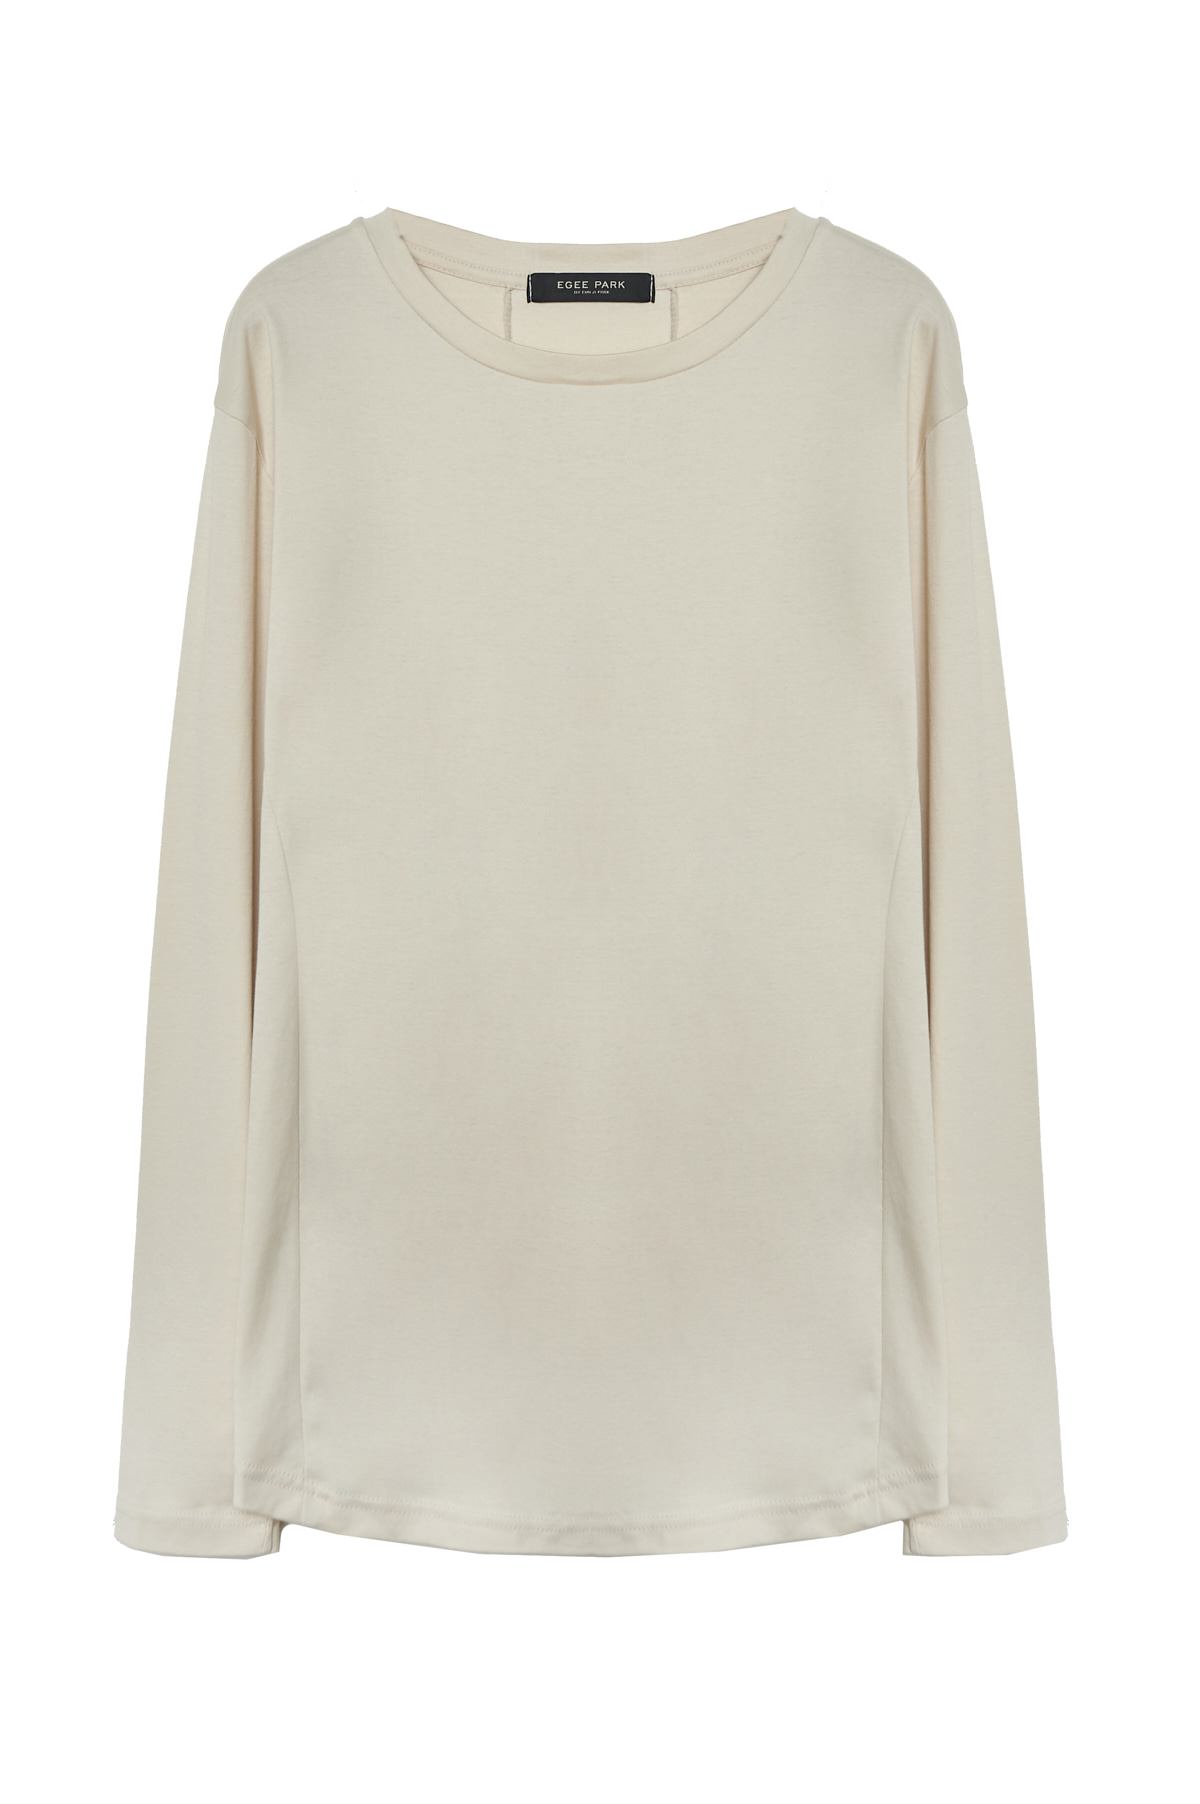 RELAXED LONG SLEEVES TOP